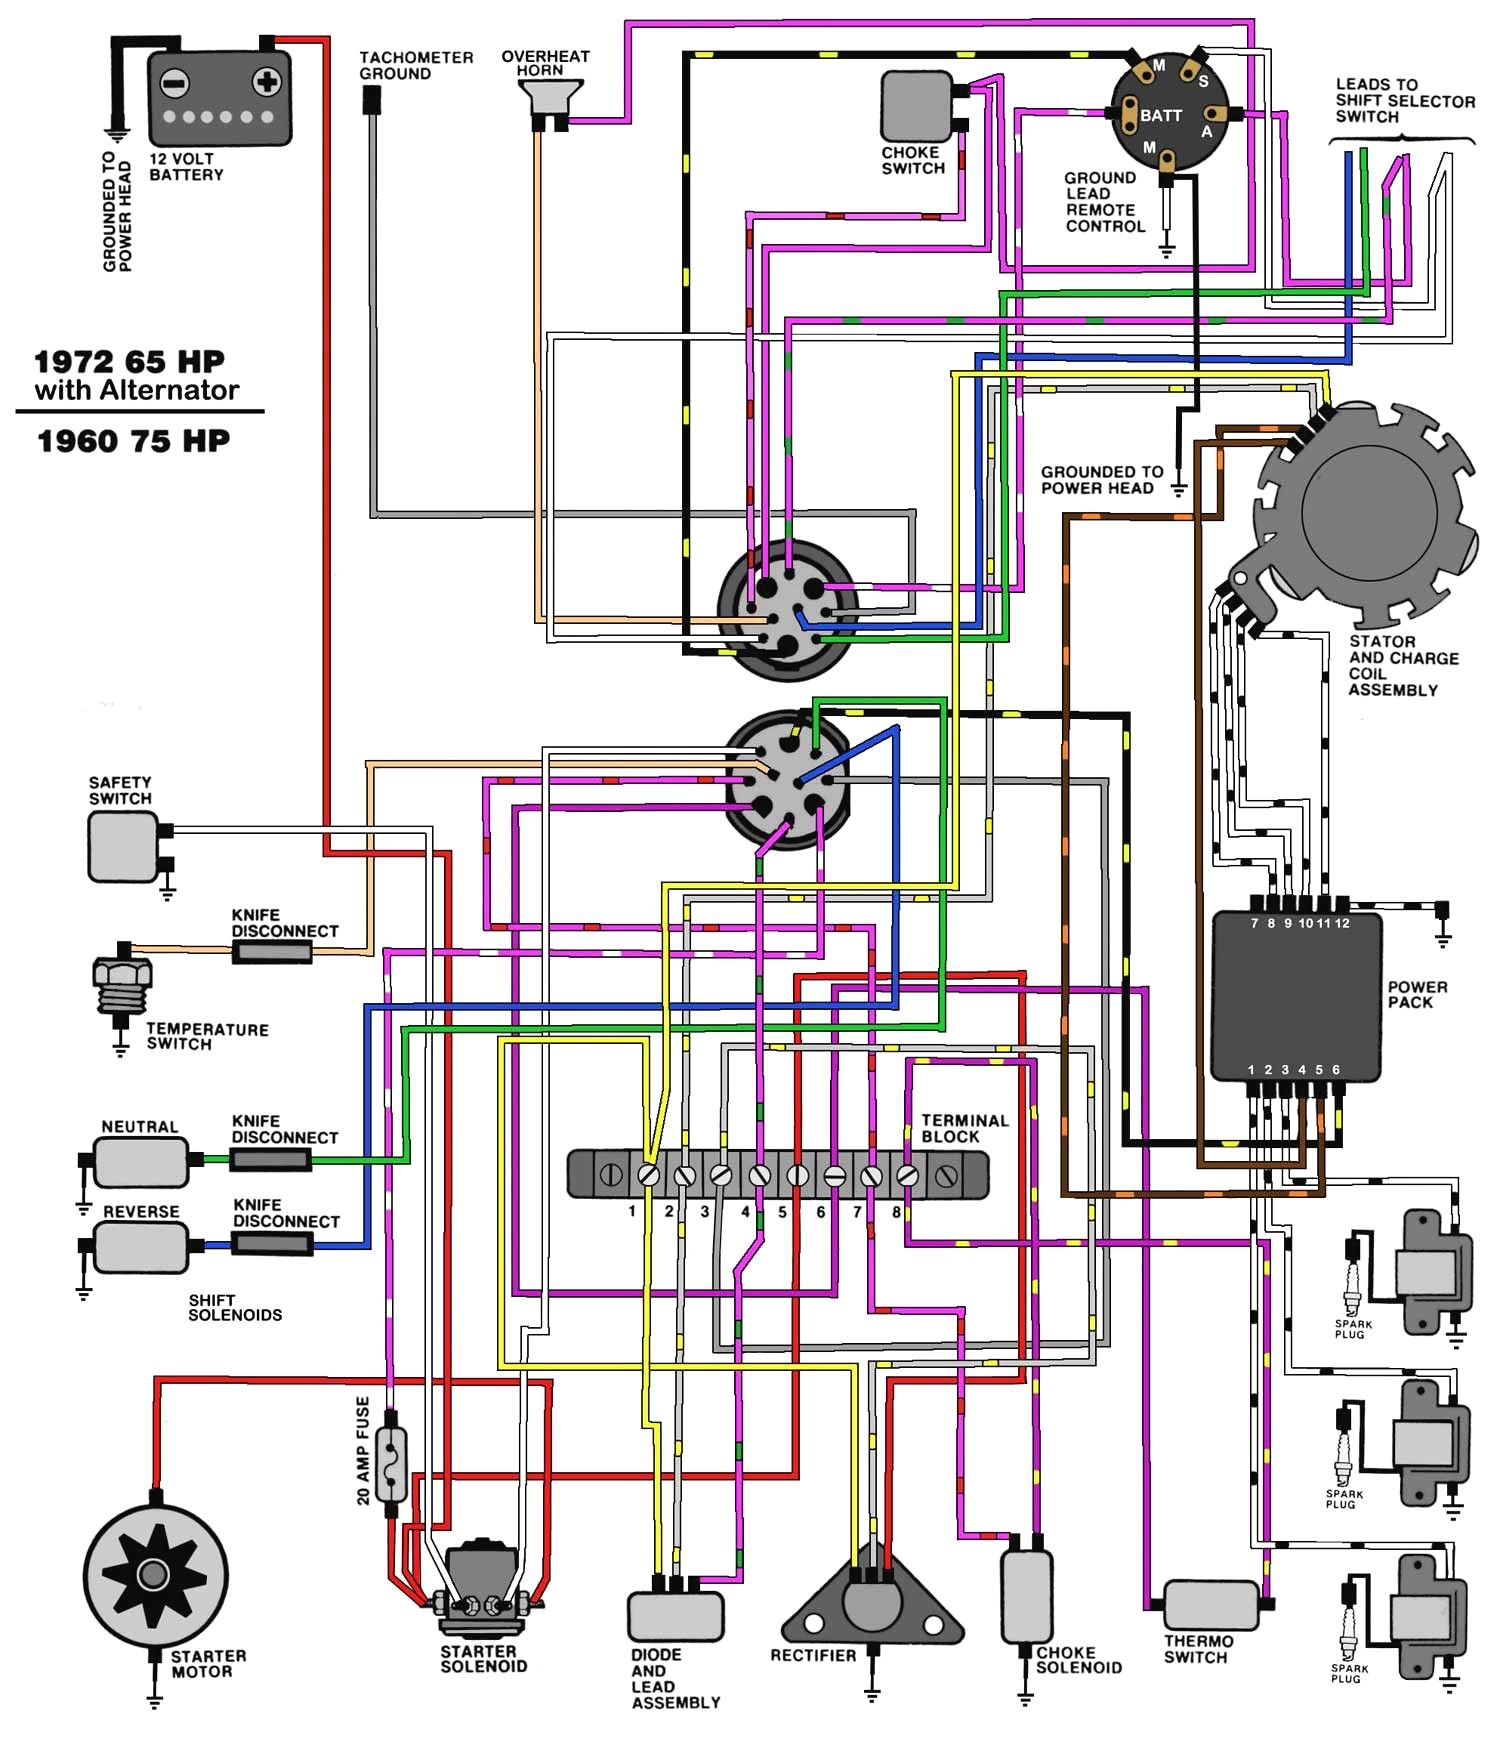 65 Hp Mercury Outboard Motor Wiring Diagram Diagrams Schematics For Outboard Diagram Electrical Wiring Diagram